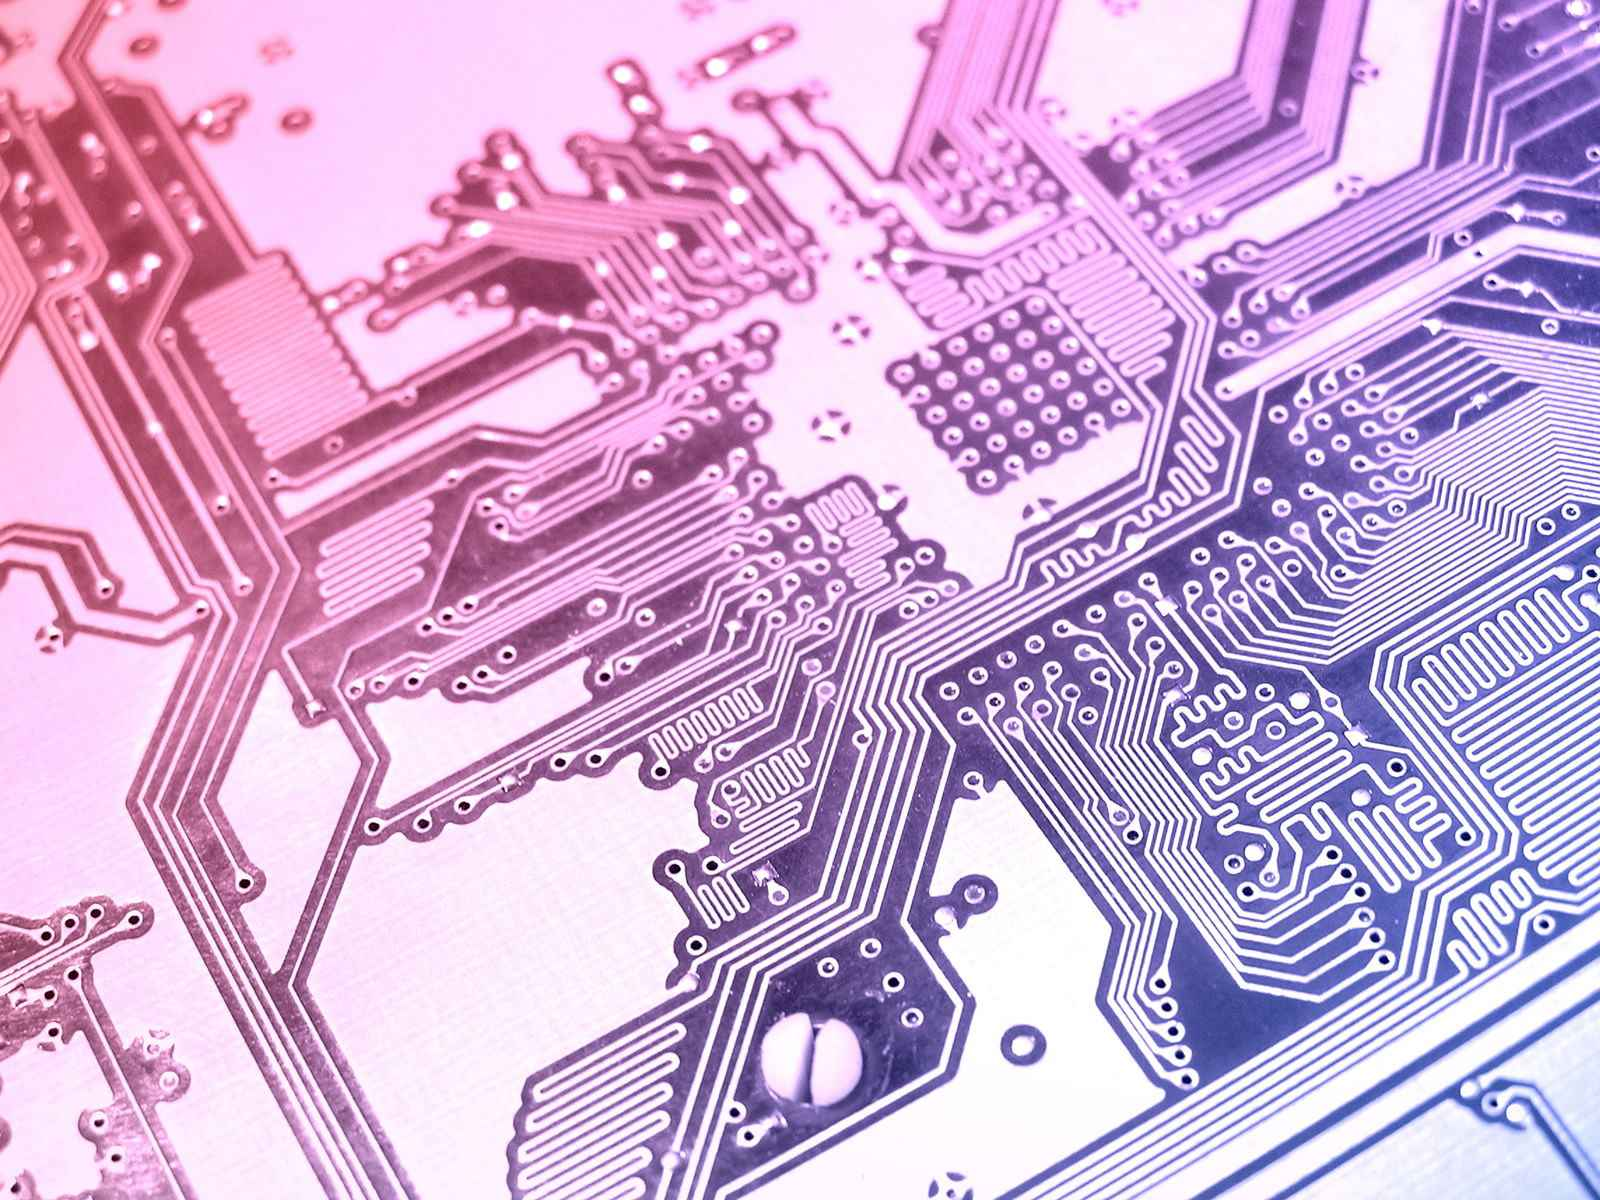 Technology Hardware Wallpaper 025